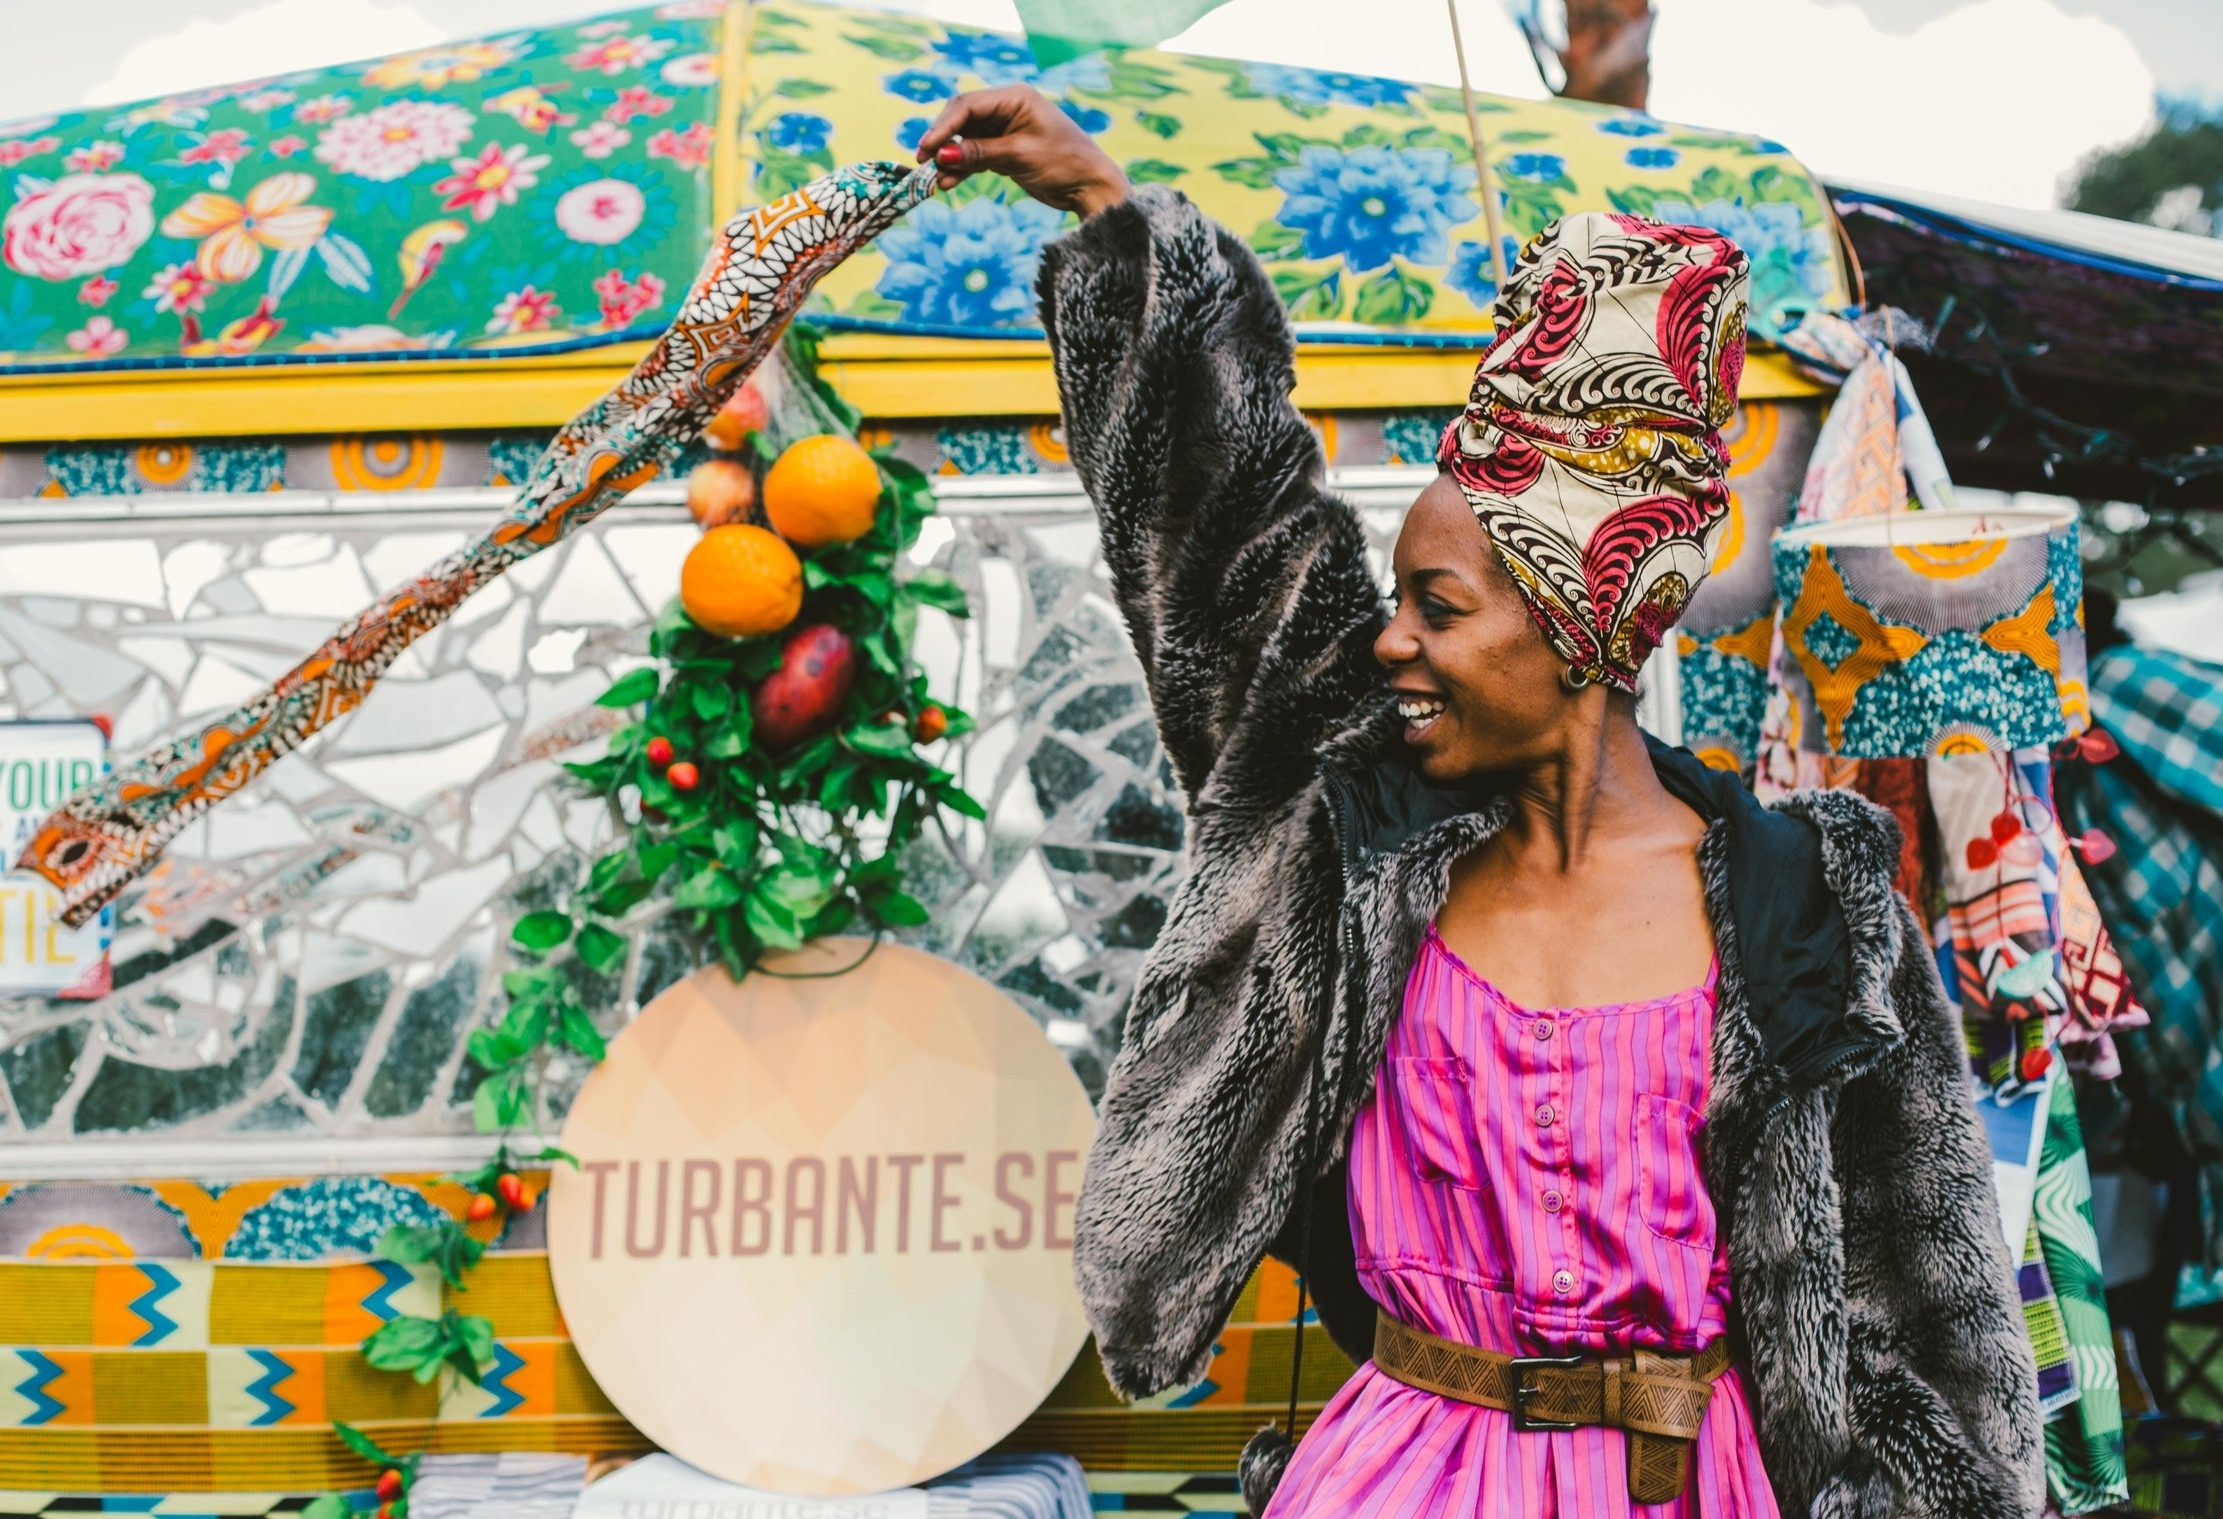 Events - From festivals to museums, Turbante-se brings history and activies for different events around the world.